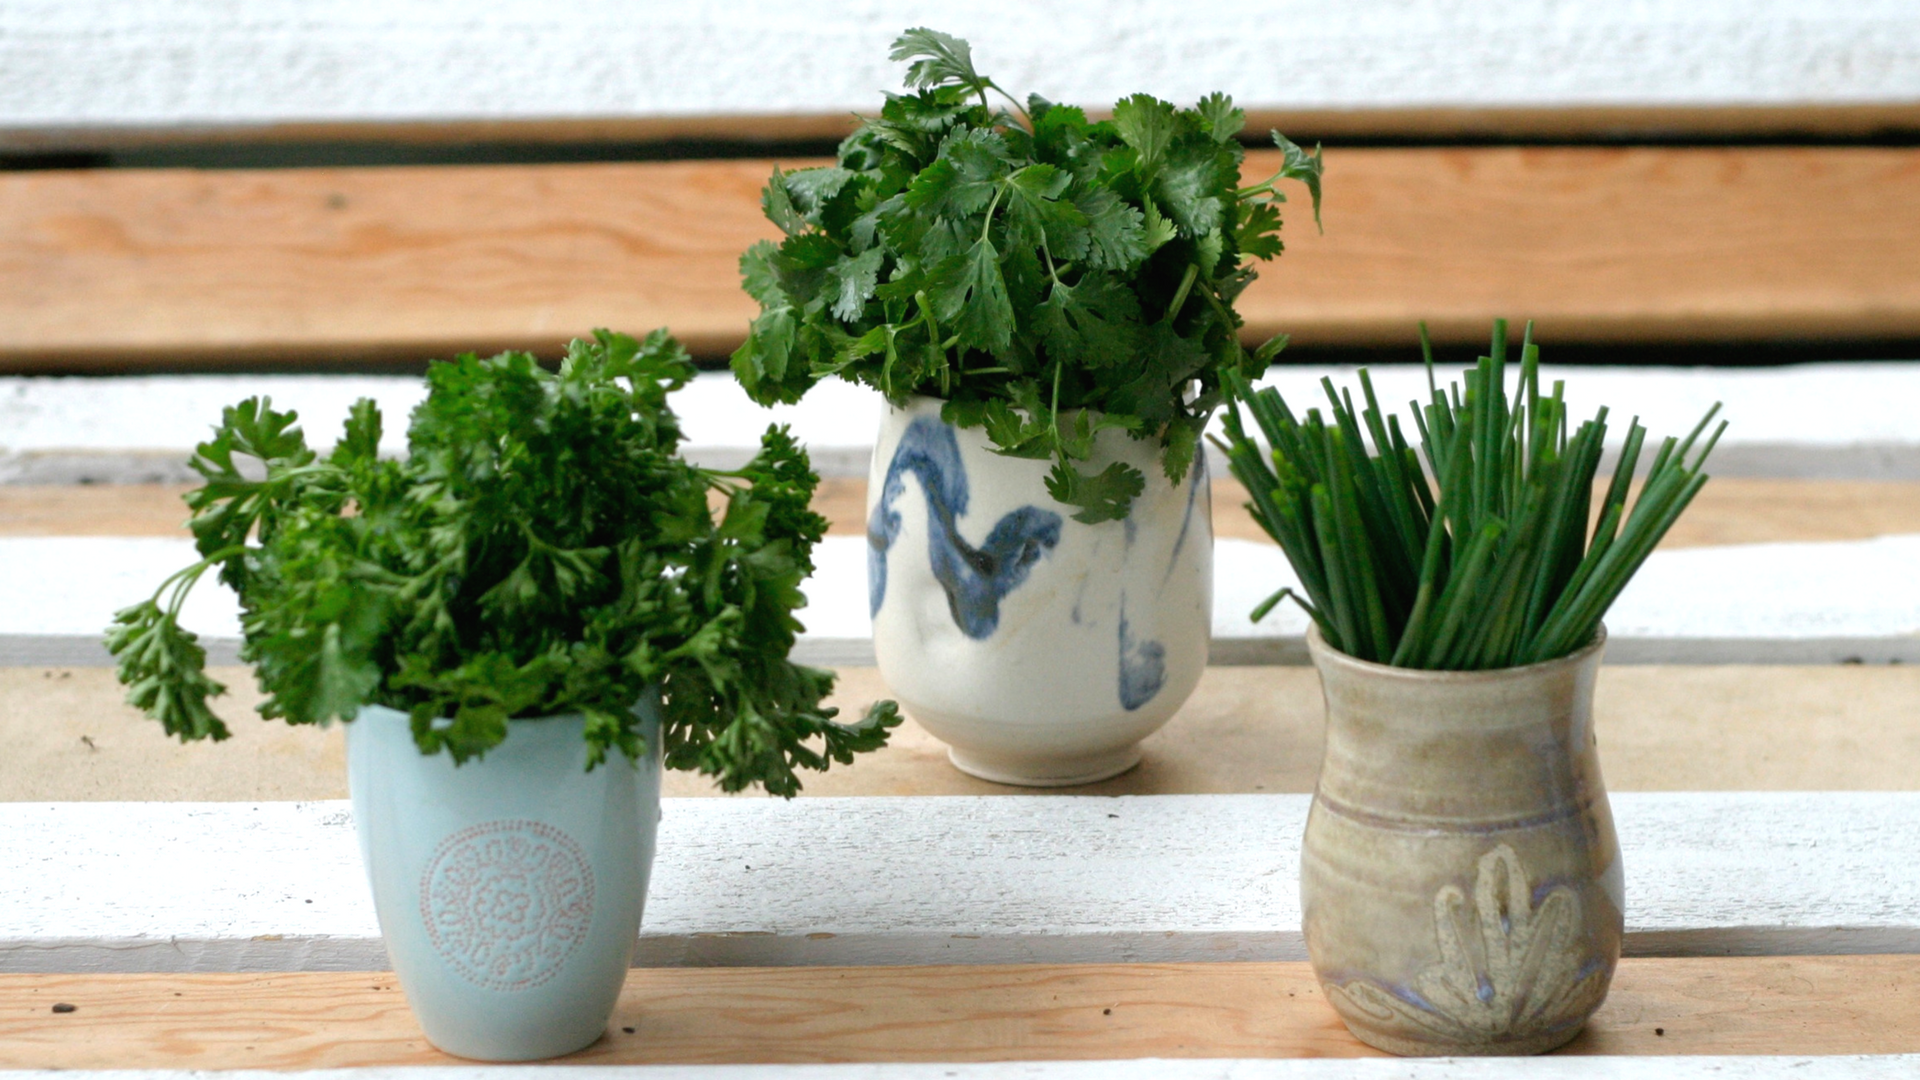 Photo Credit: the Green Moustache - Vit C in parsley: 133mg/100g